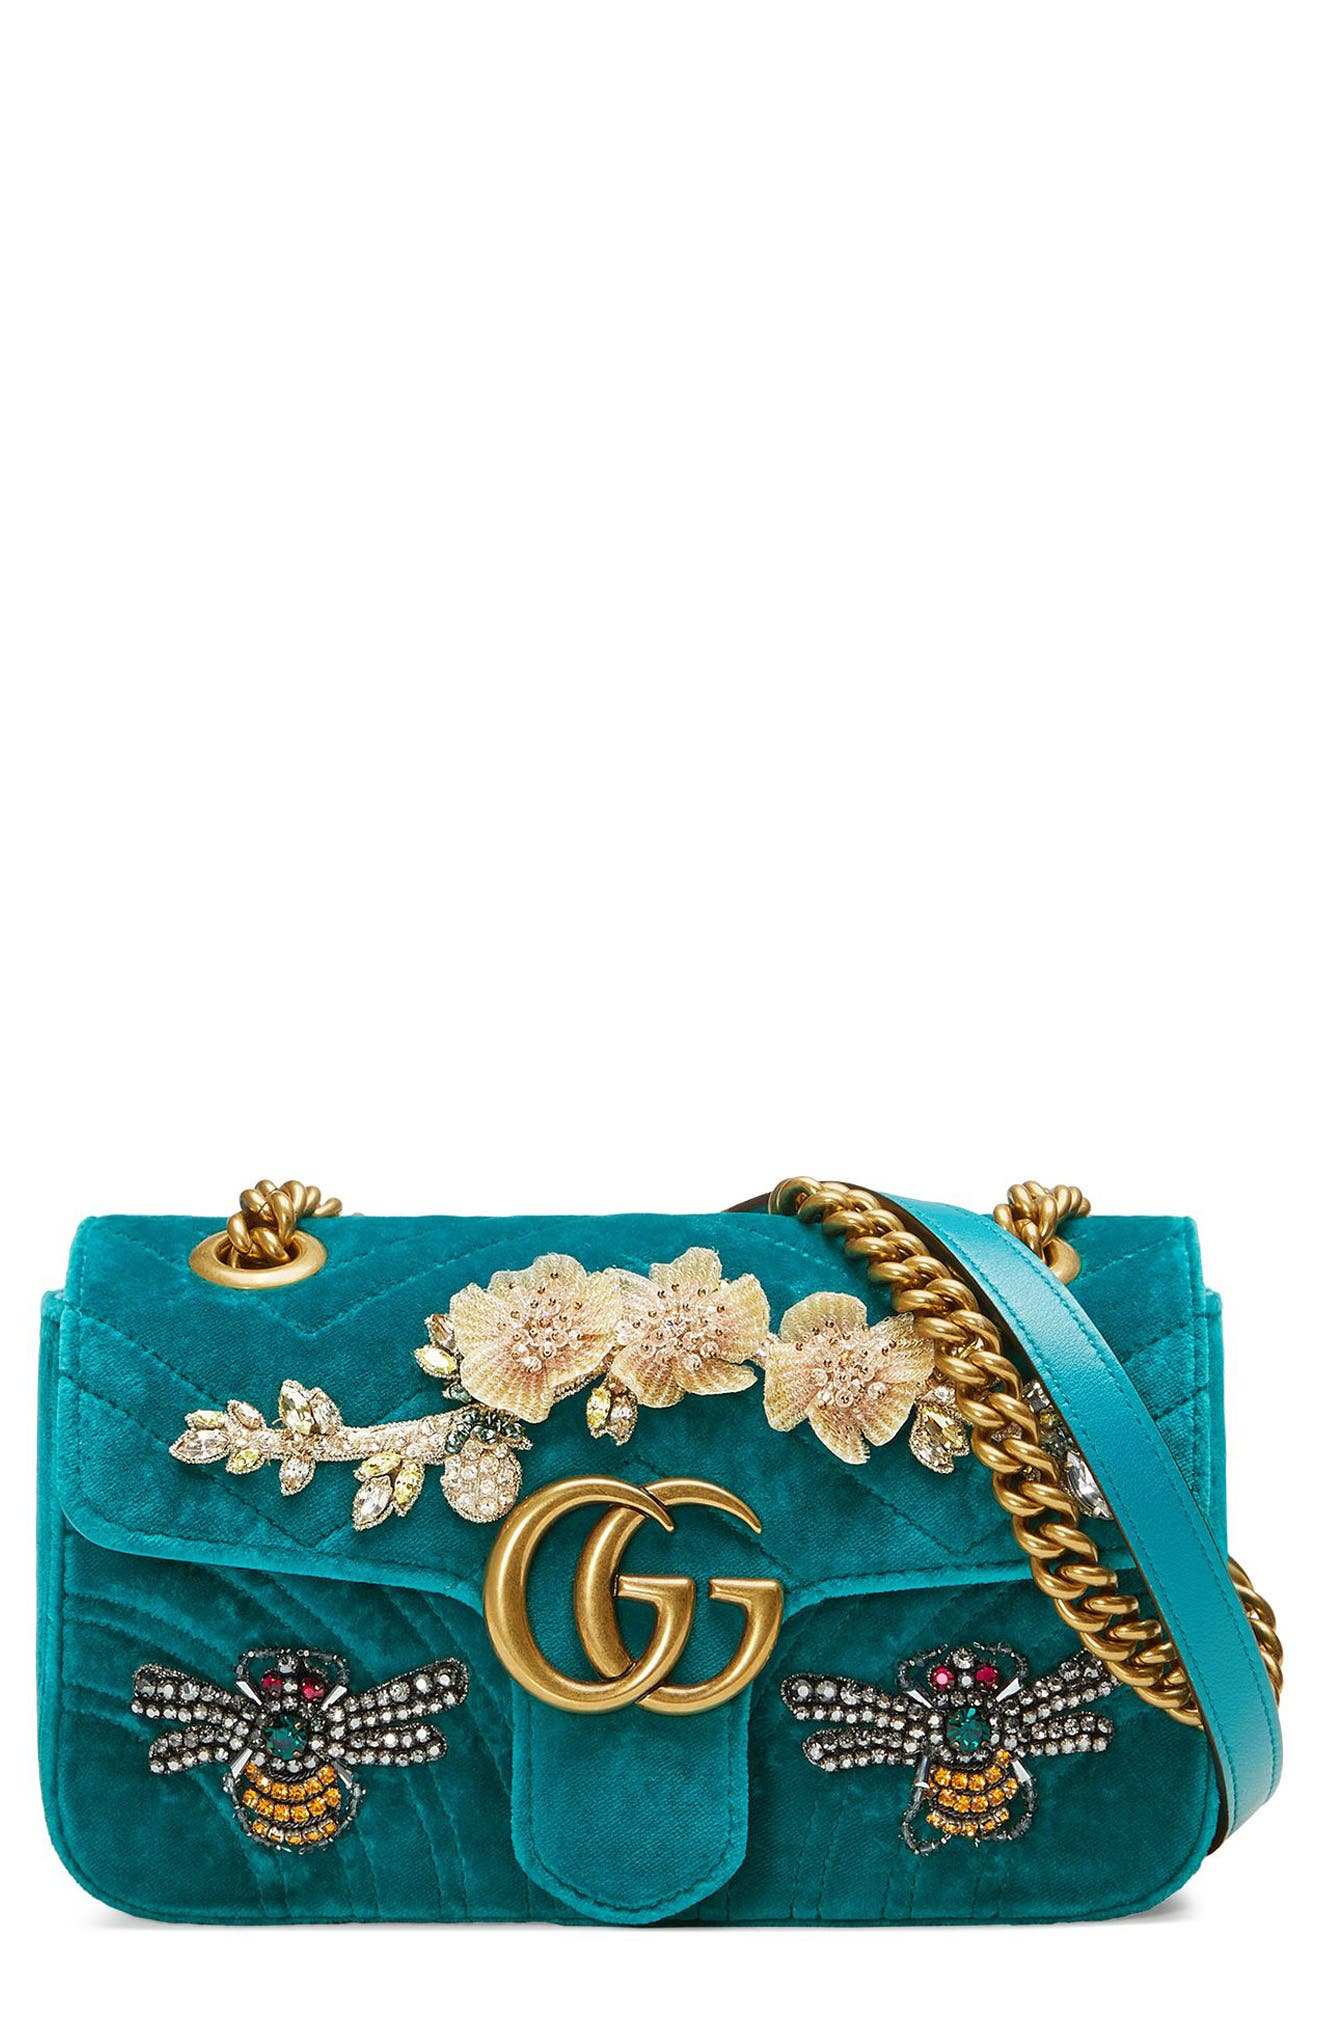 Gucci Mini GG Marmont Matelassé Velvet Shoulder Bag